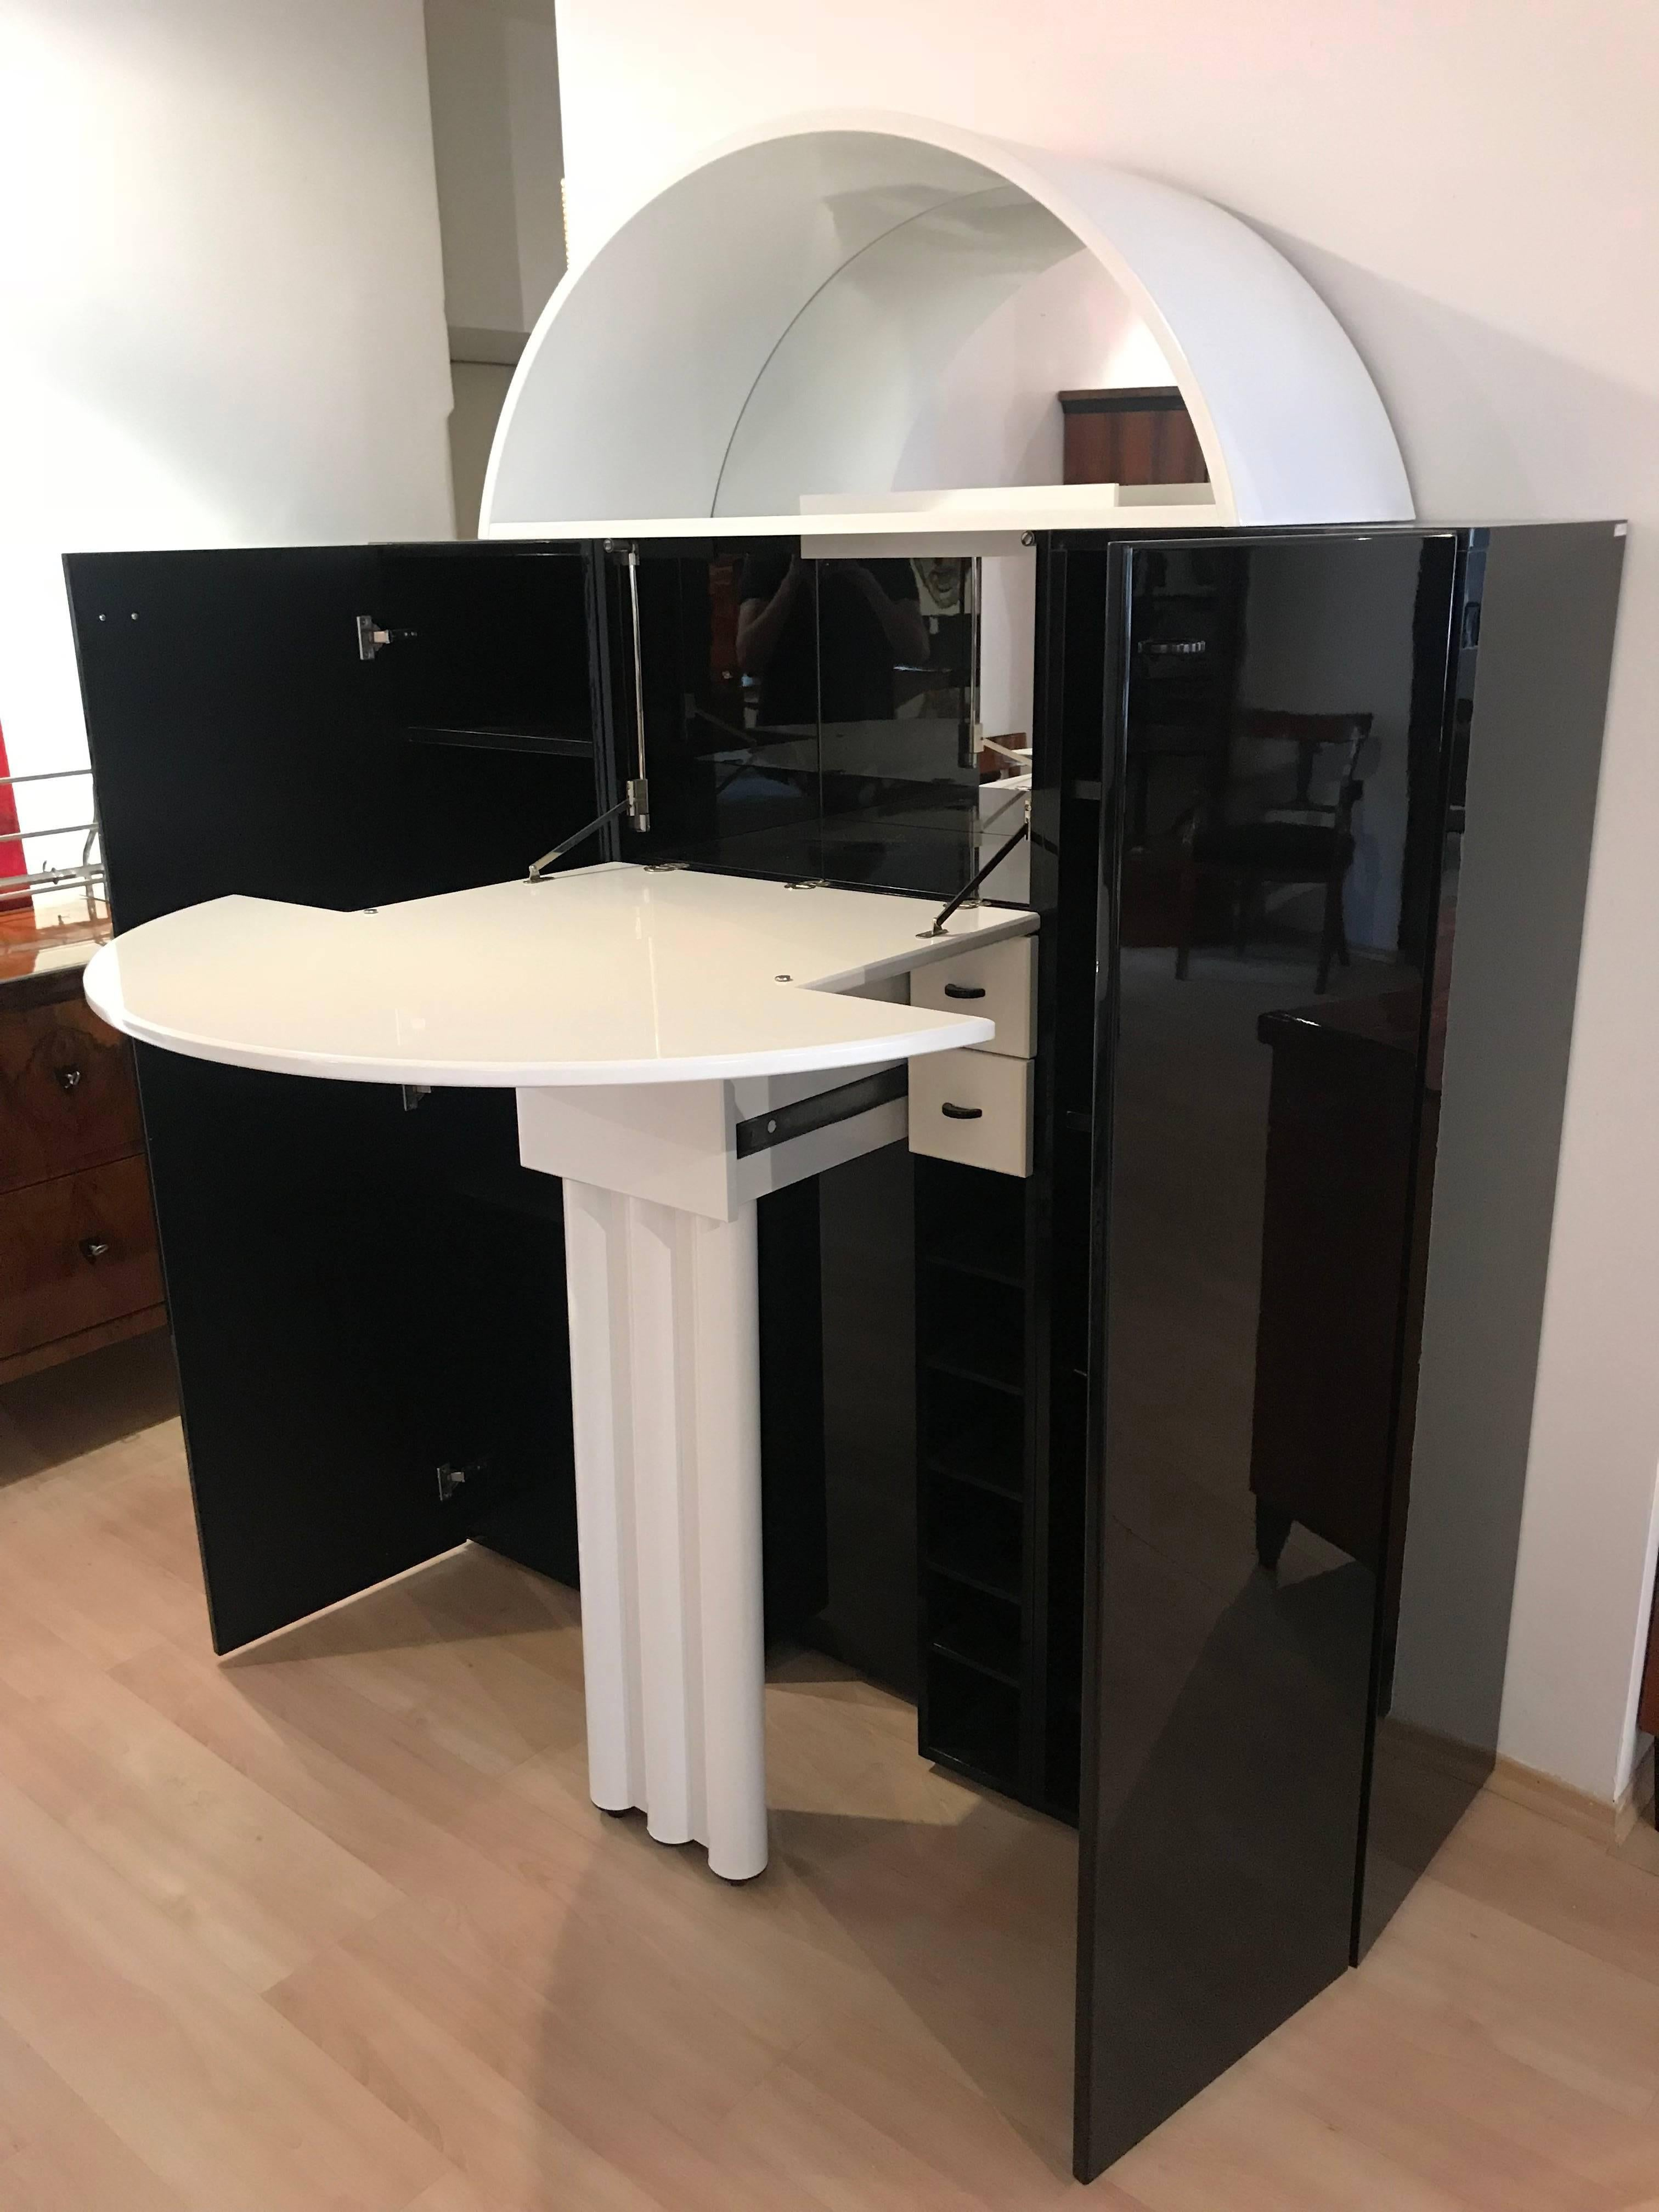 Space Age Expandable Bar Cabinet From Interlübke, Germany 1970s For Sale